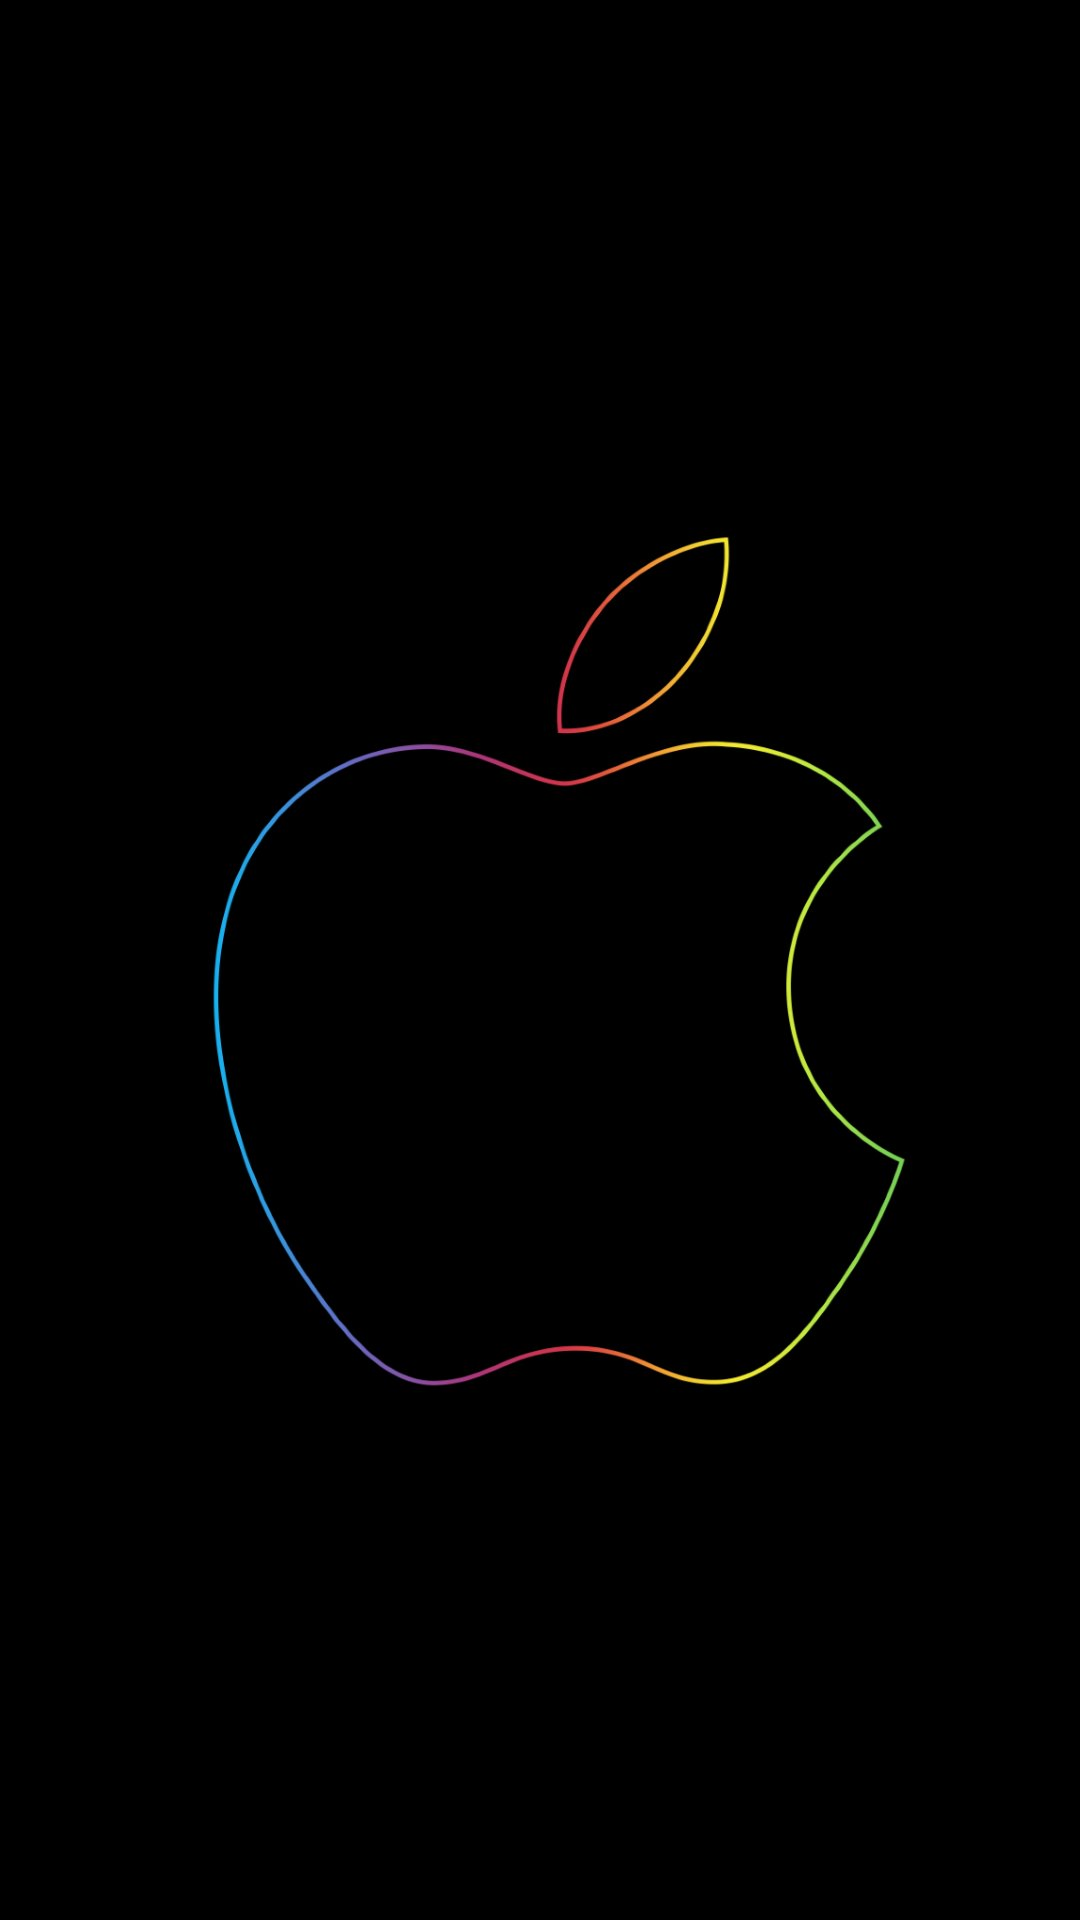 Apple Event October 2014 Smartphone Wallpapers HD